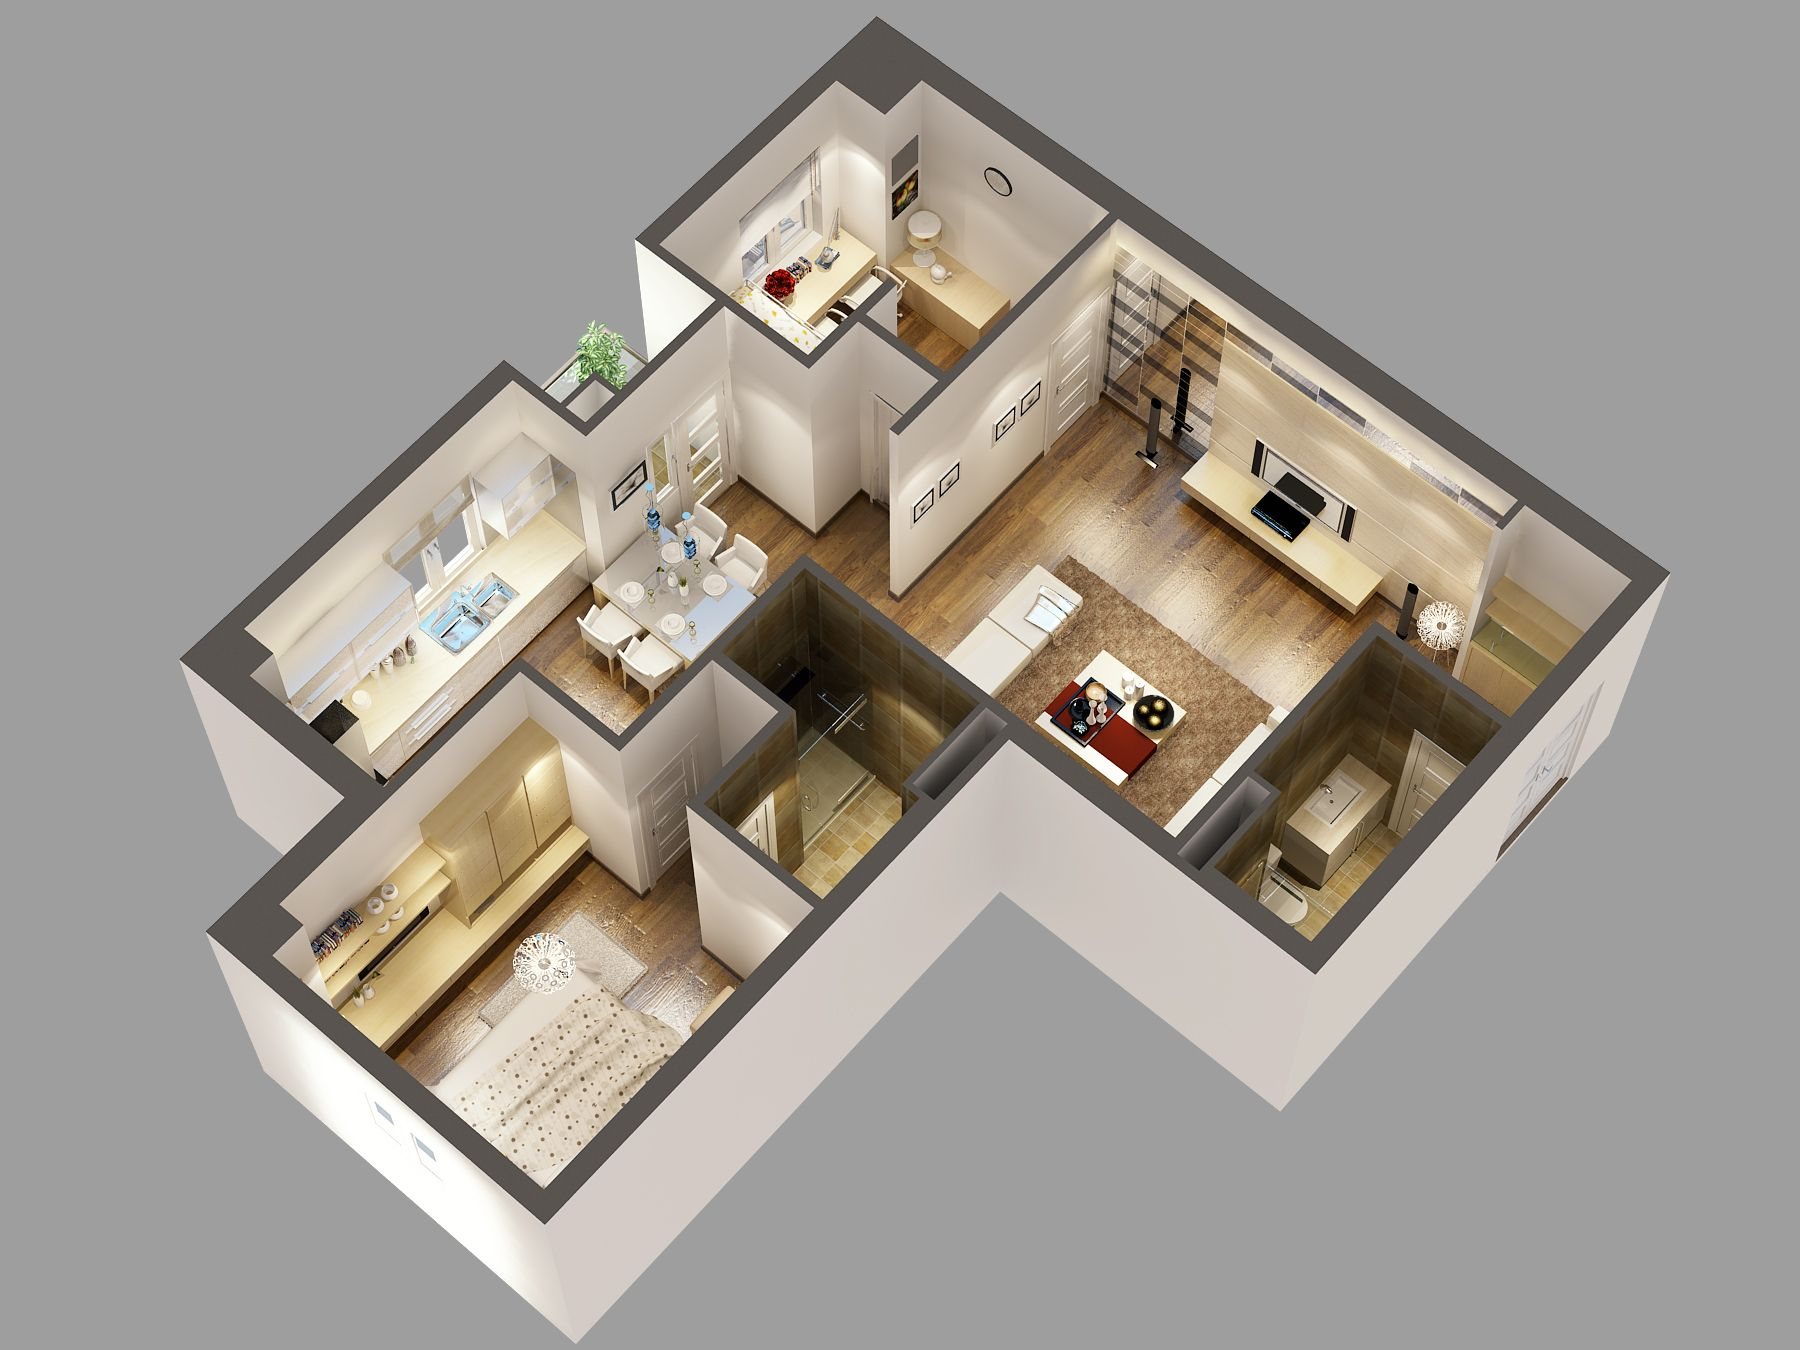 3d Floor Plan Software Free With Awesome Modern Interior Design With Laminate Floooring For 3 Room Design Software Home Design Software 3d Home Design Software